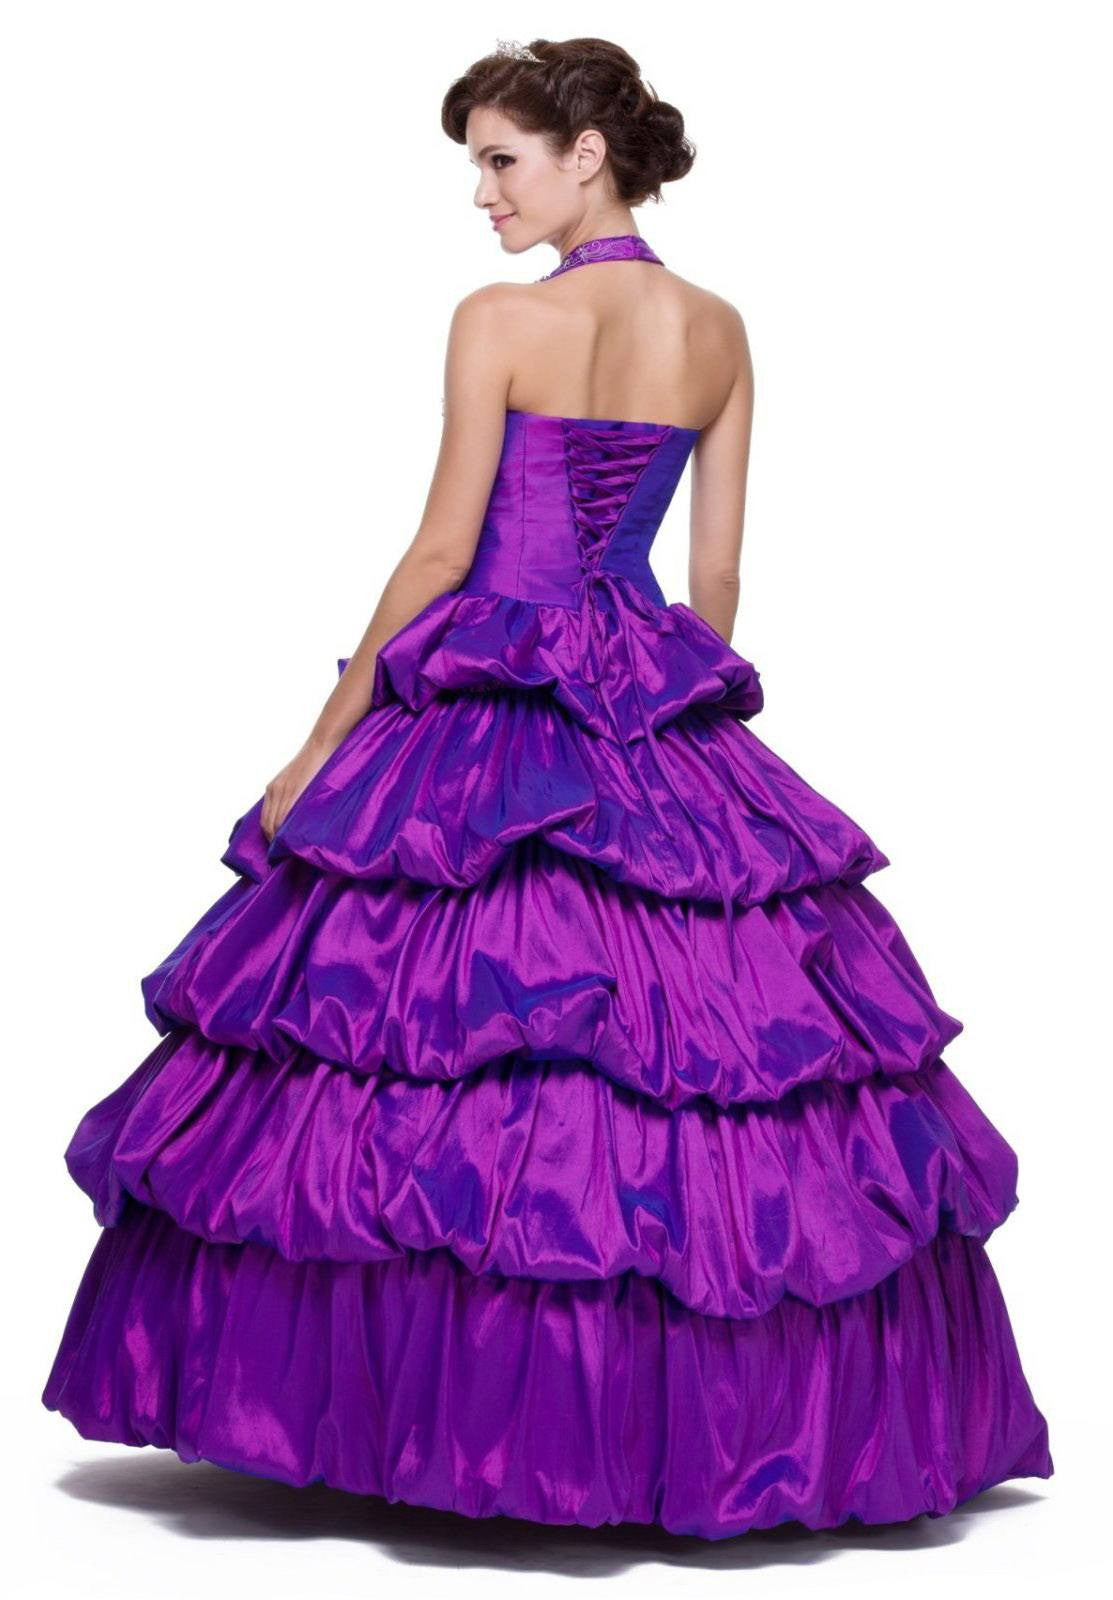 Long Poofy Purple Cinderella Dress Strapless Quinceanera Puffy Gown